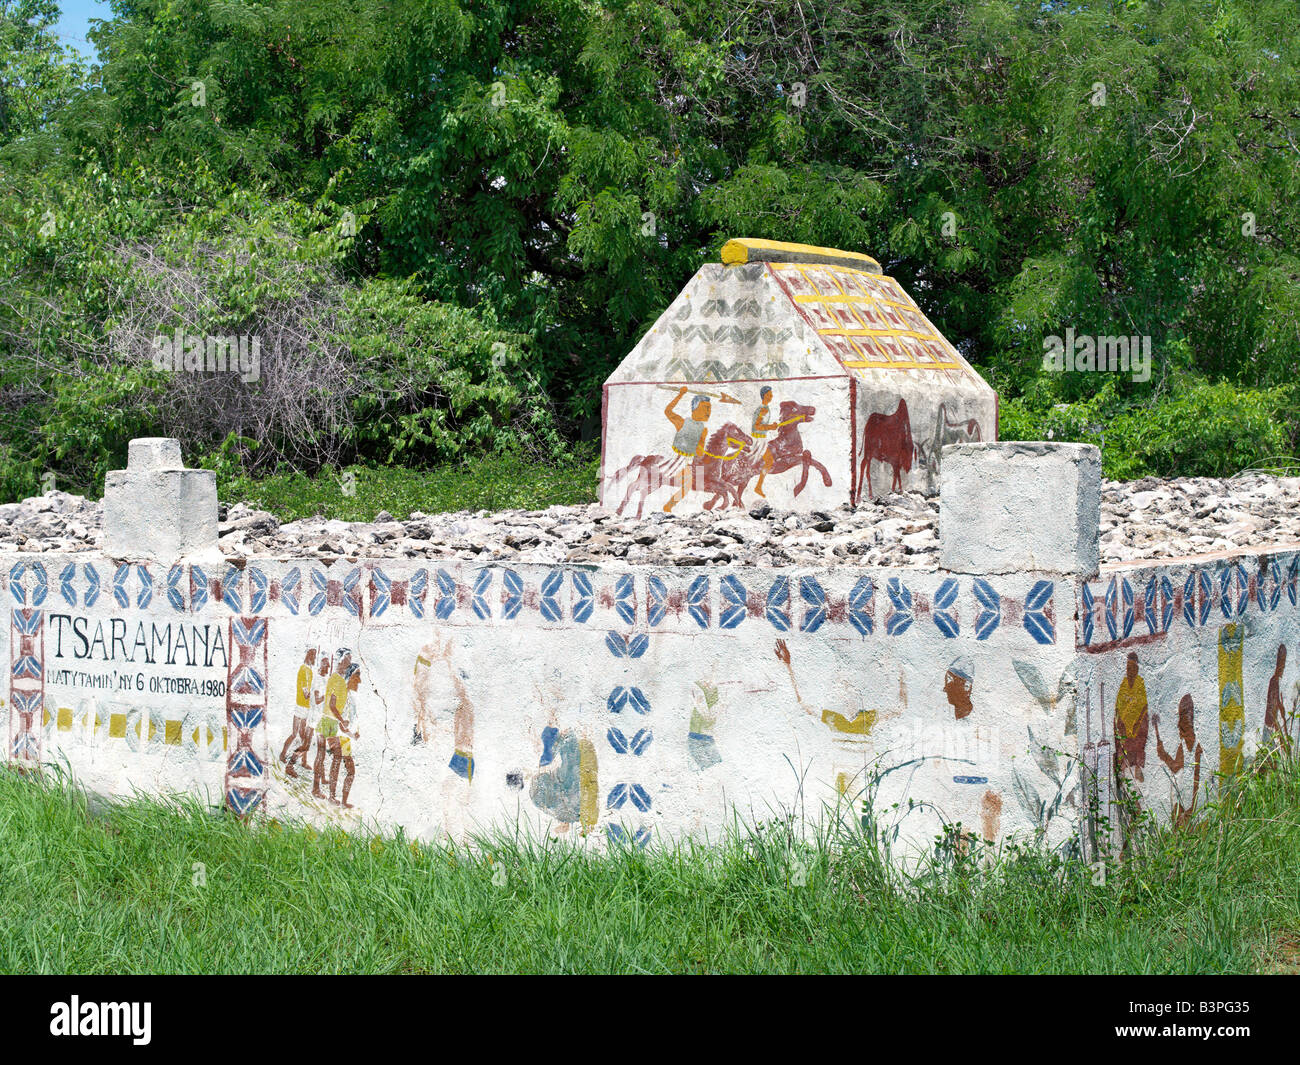 Southwest  Madagascar, Andranovy. A Mahafaly tomb.  A Mahafaly man who has been a respected and wealthy member of - Stock Image